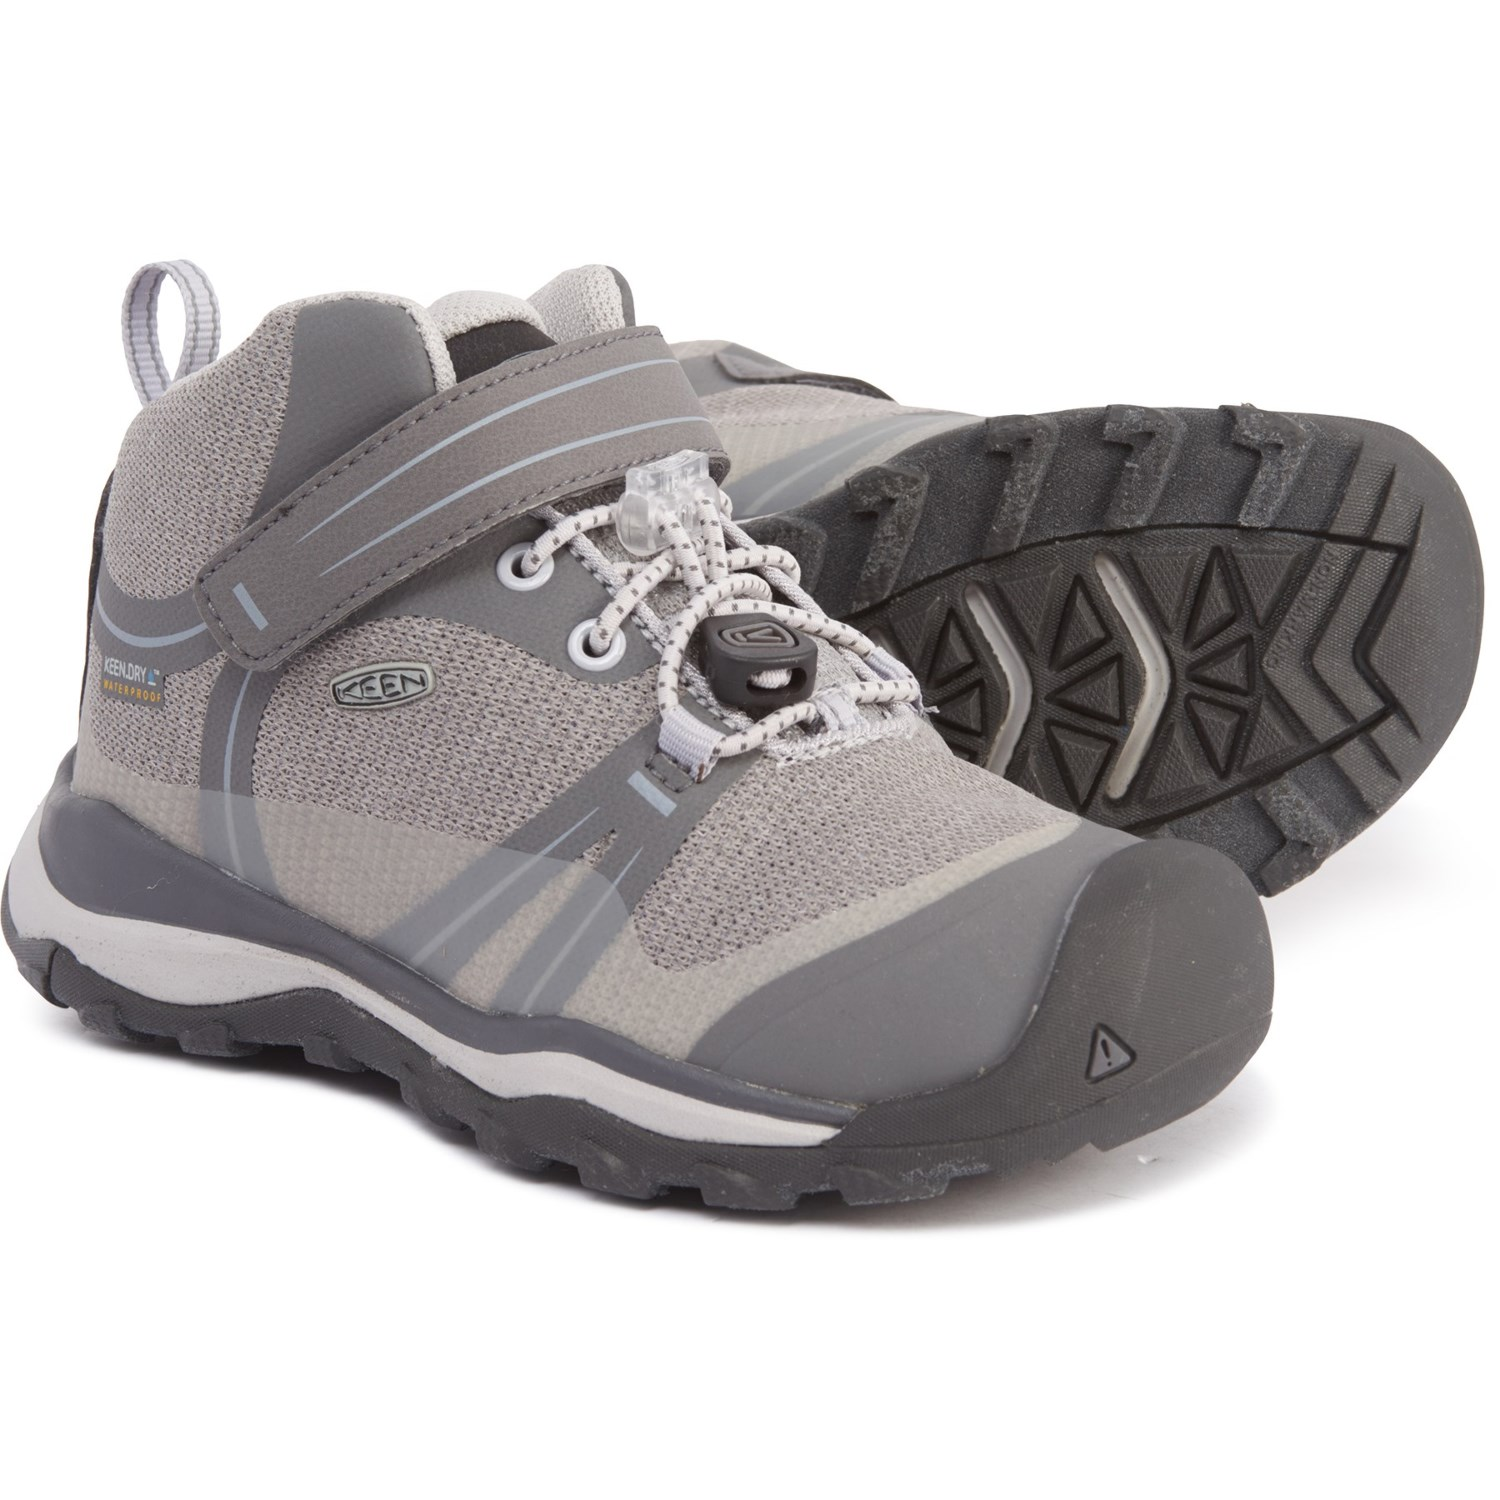 wholesale dealer bc43a a2744 Keen Terradora Mid Hiking Boots (For Little Kids) - Save 33%